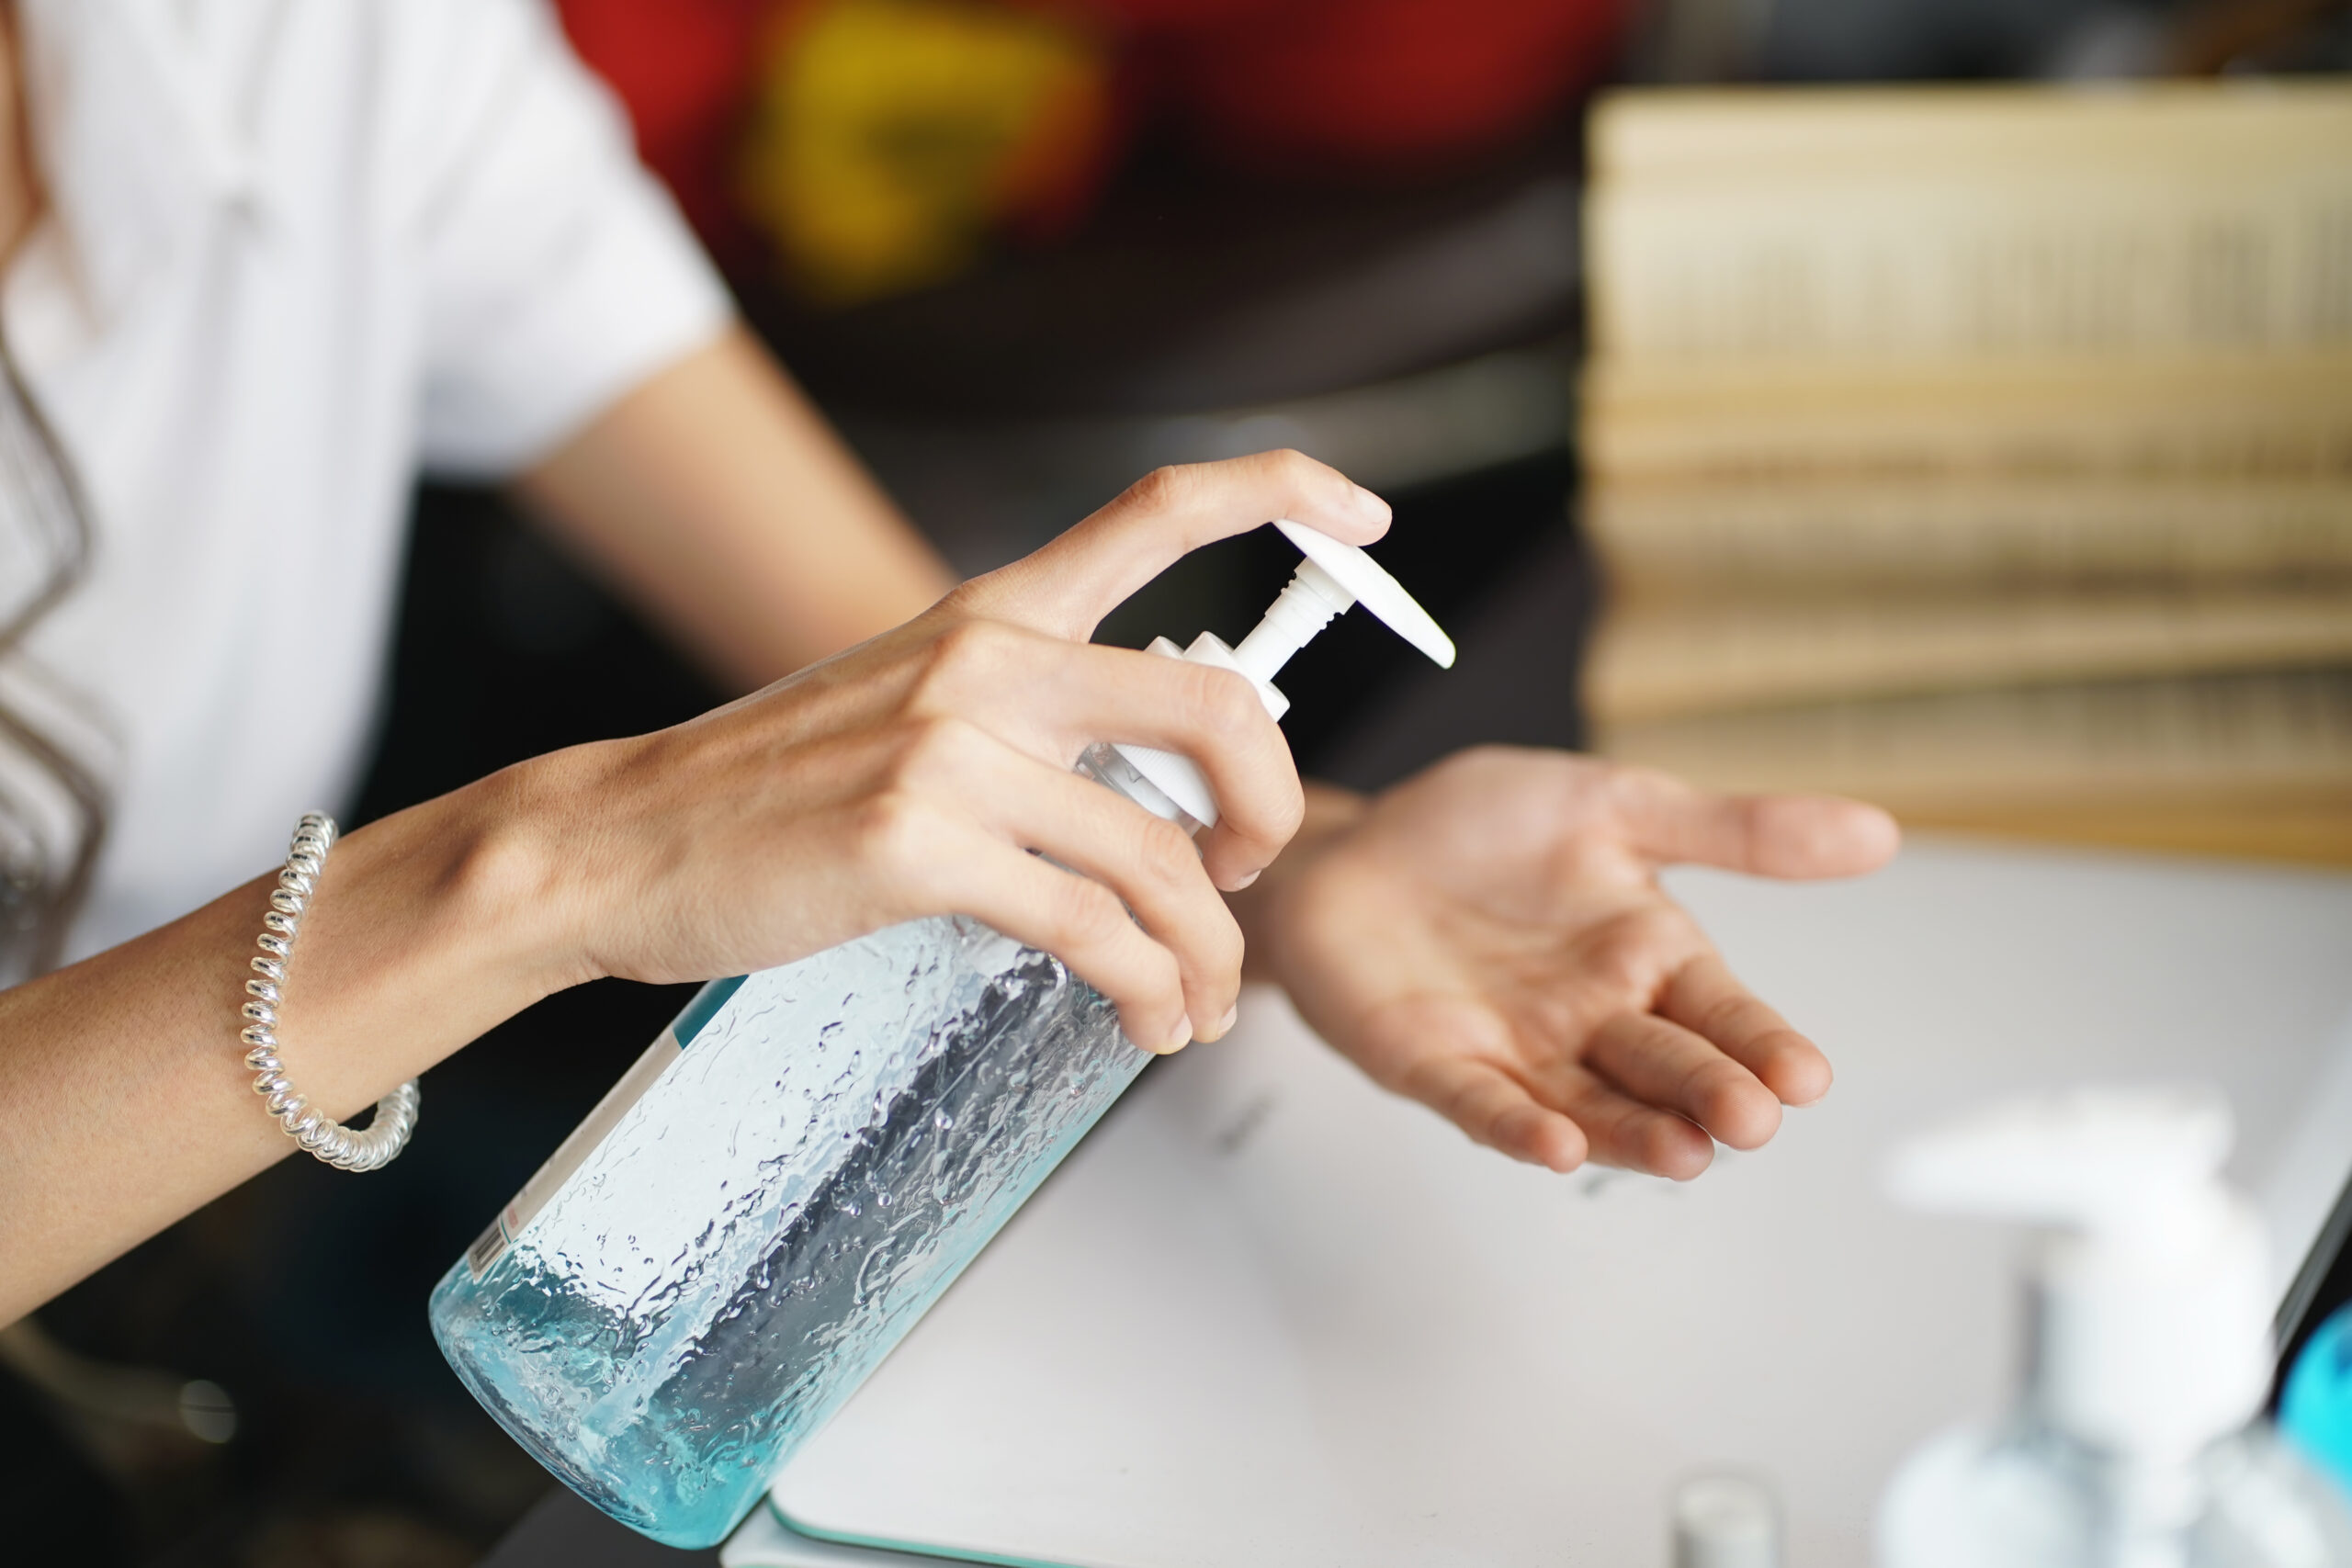 Is Hand Sanitizer Bad for You?